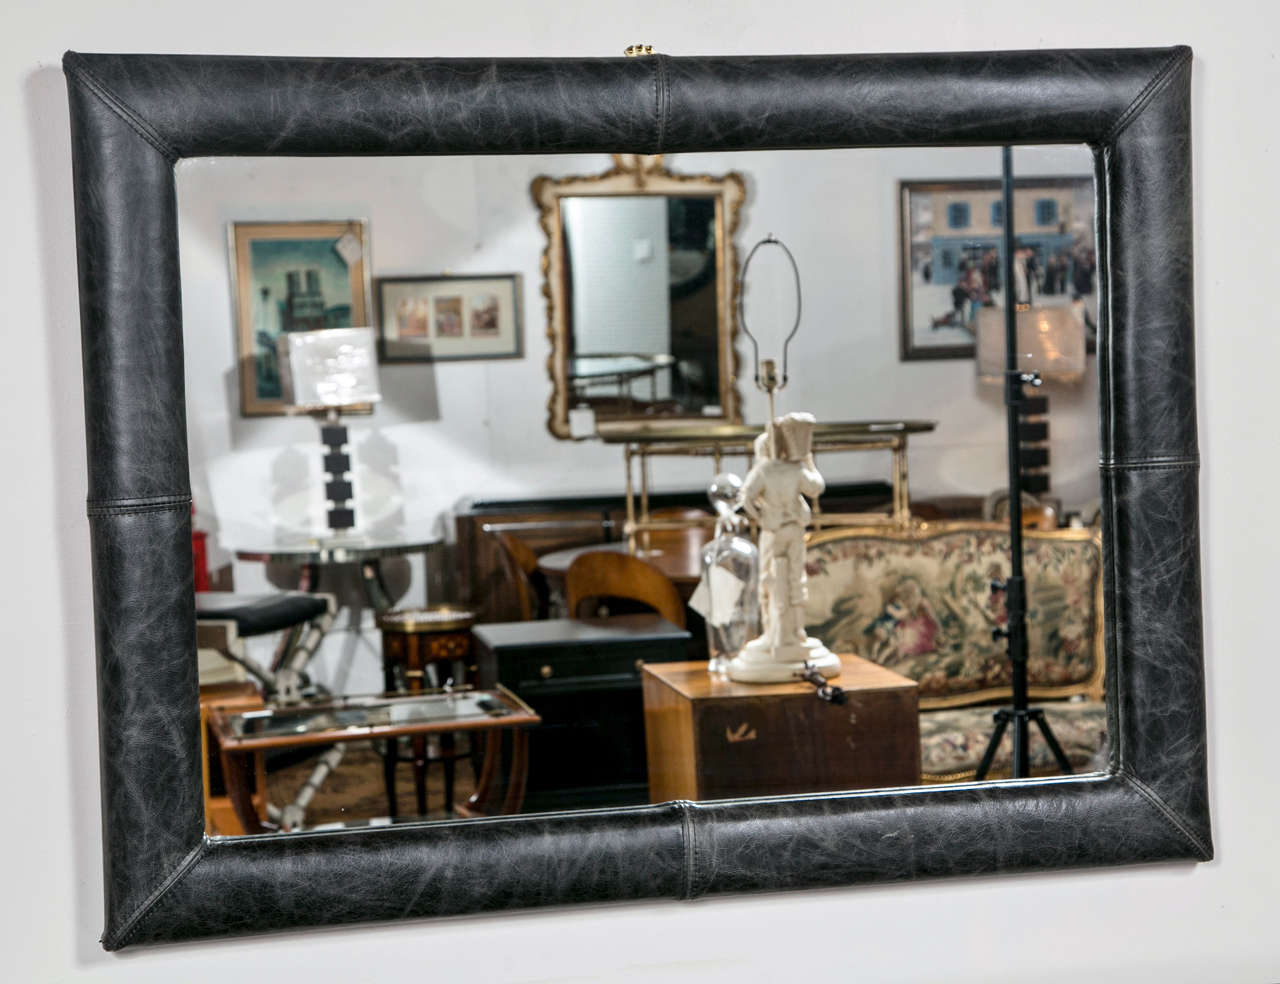 The rectangular glass surmounted on a dark charcoal color distress leather upholstered frame.